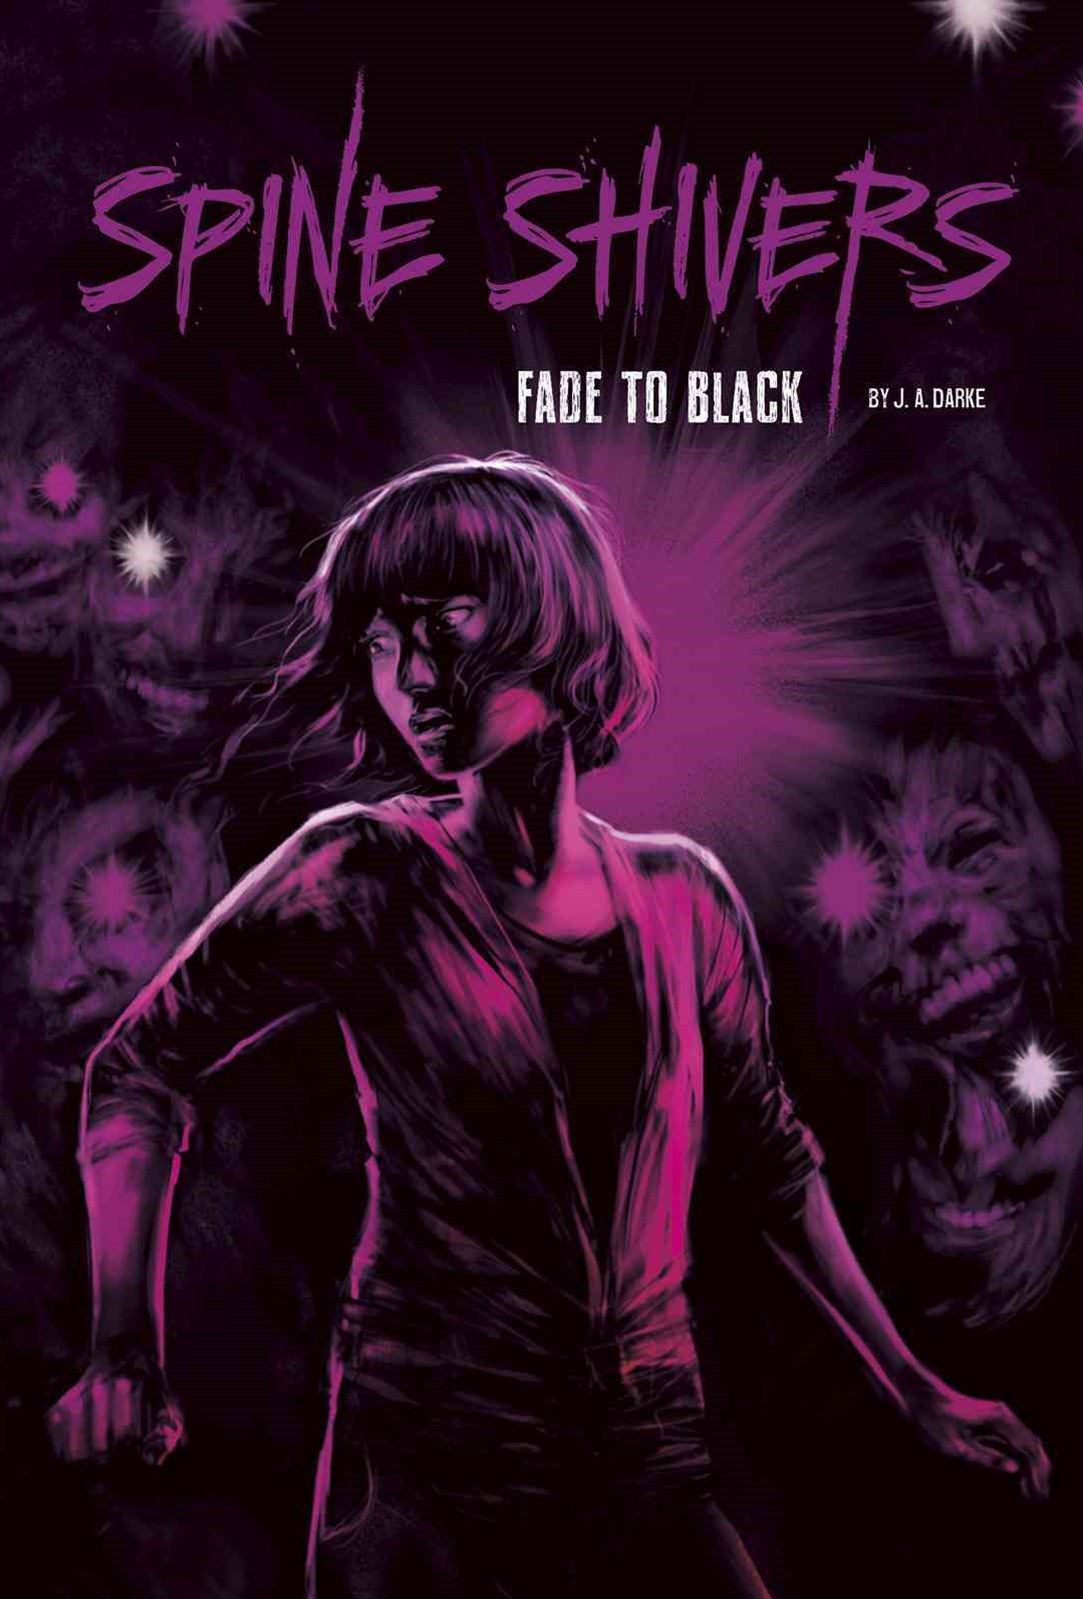 Spine Shivers: Fade to Black